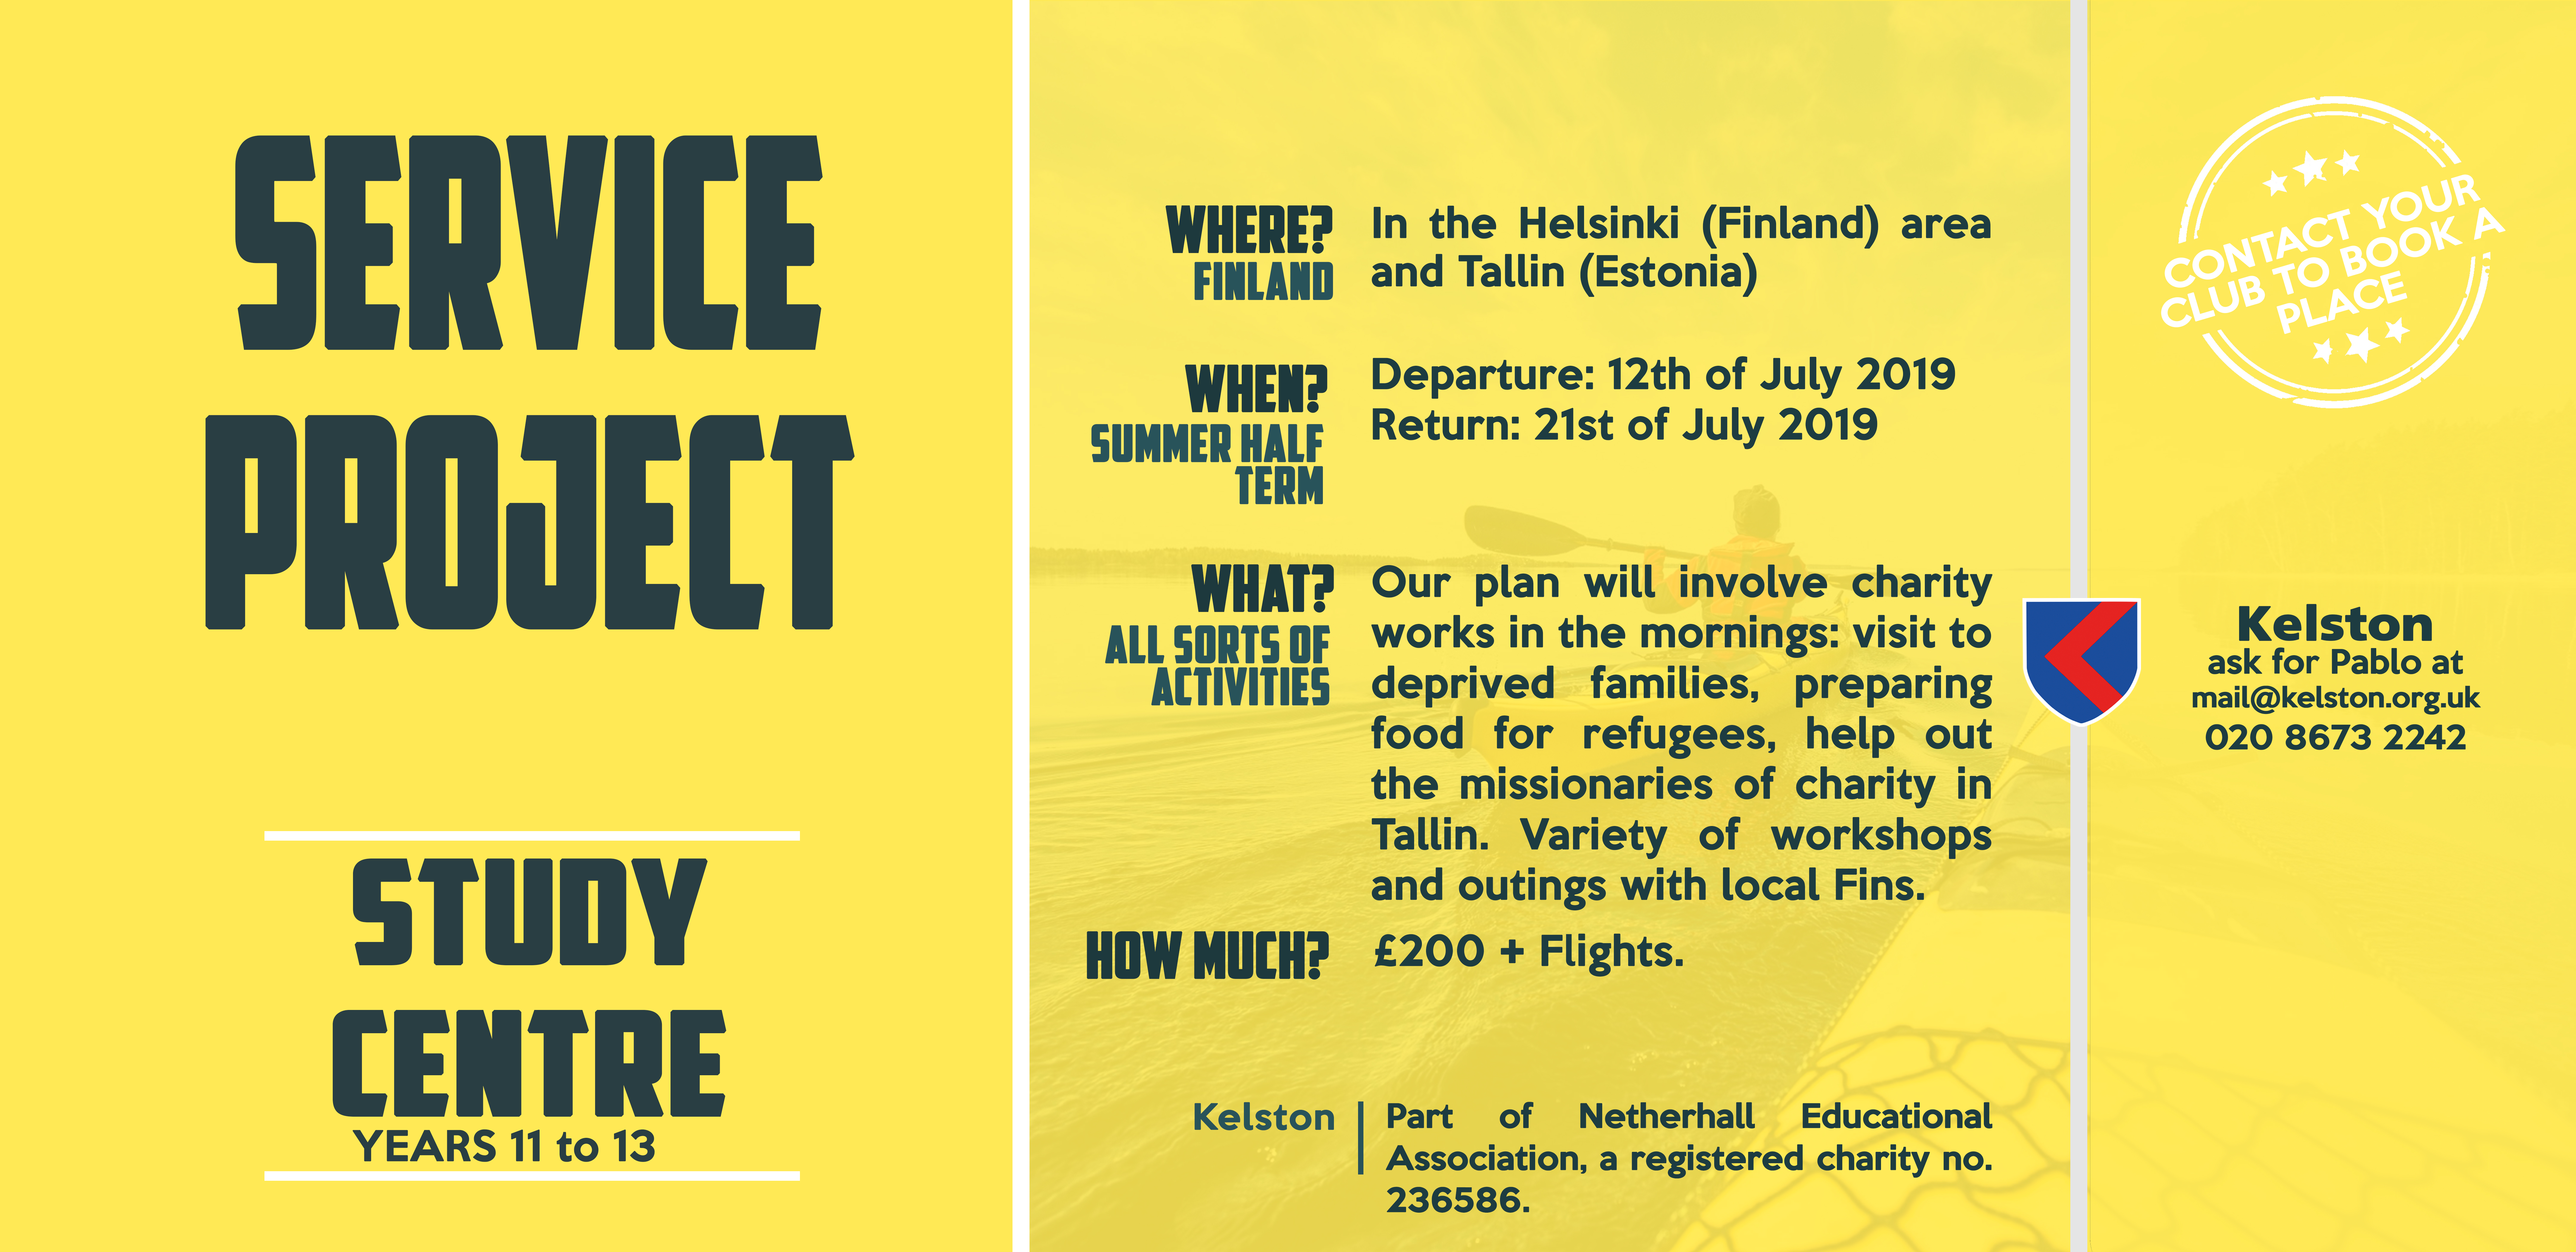 1Service_Project_2019